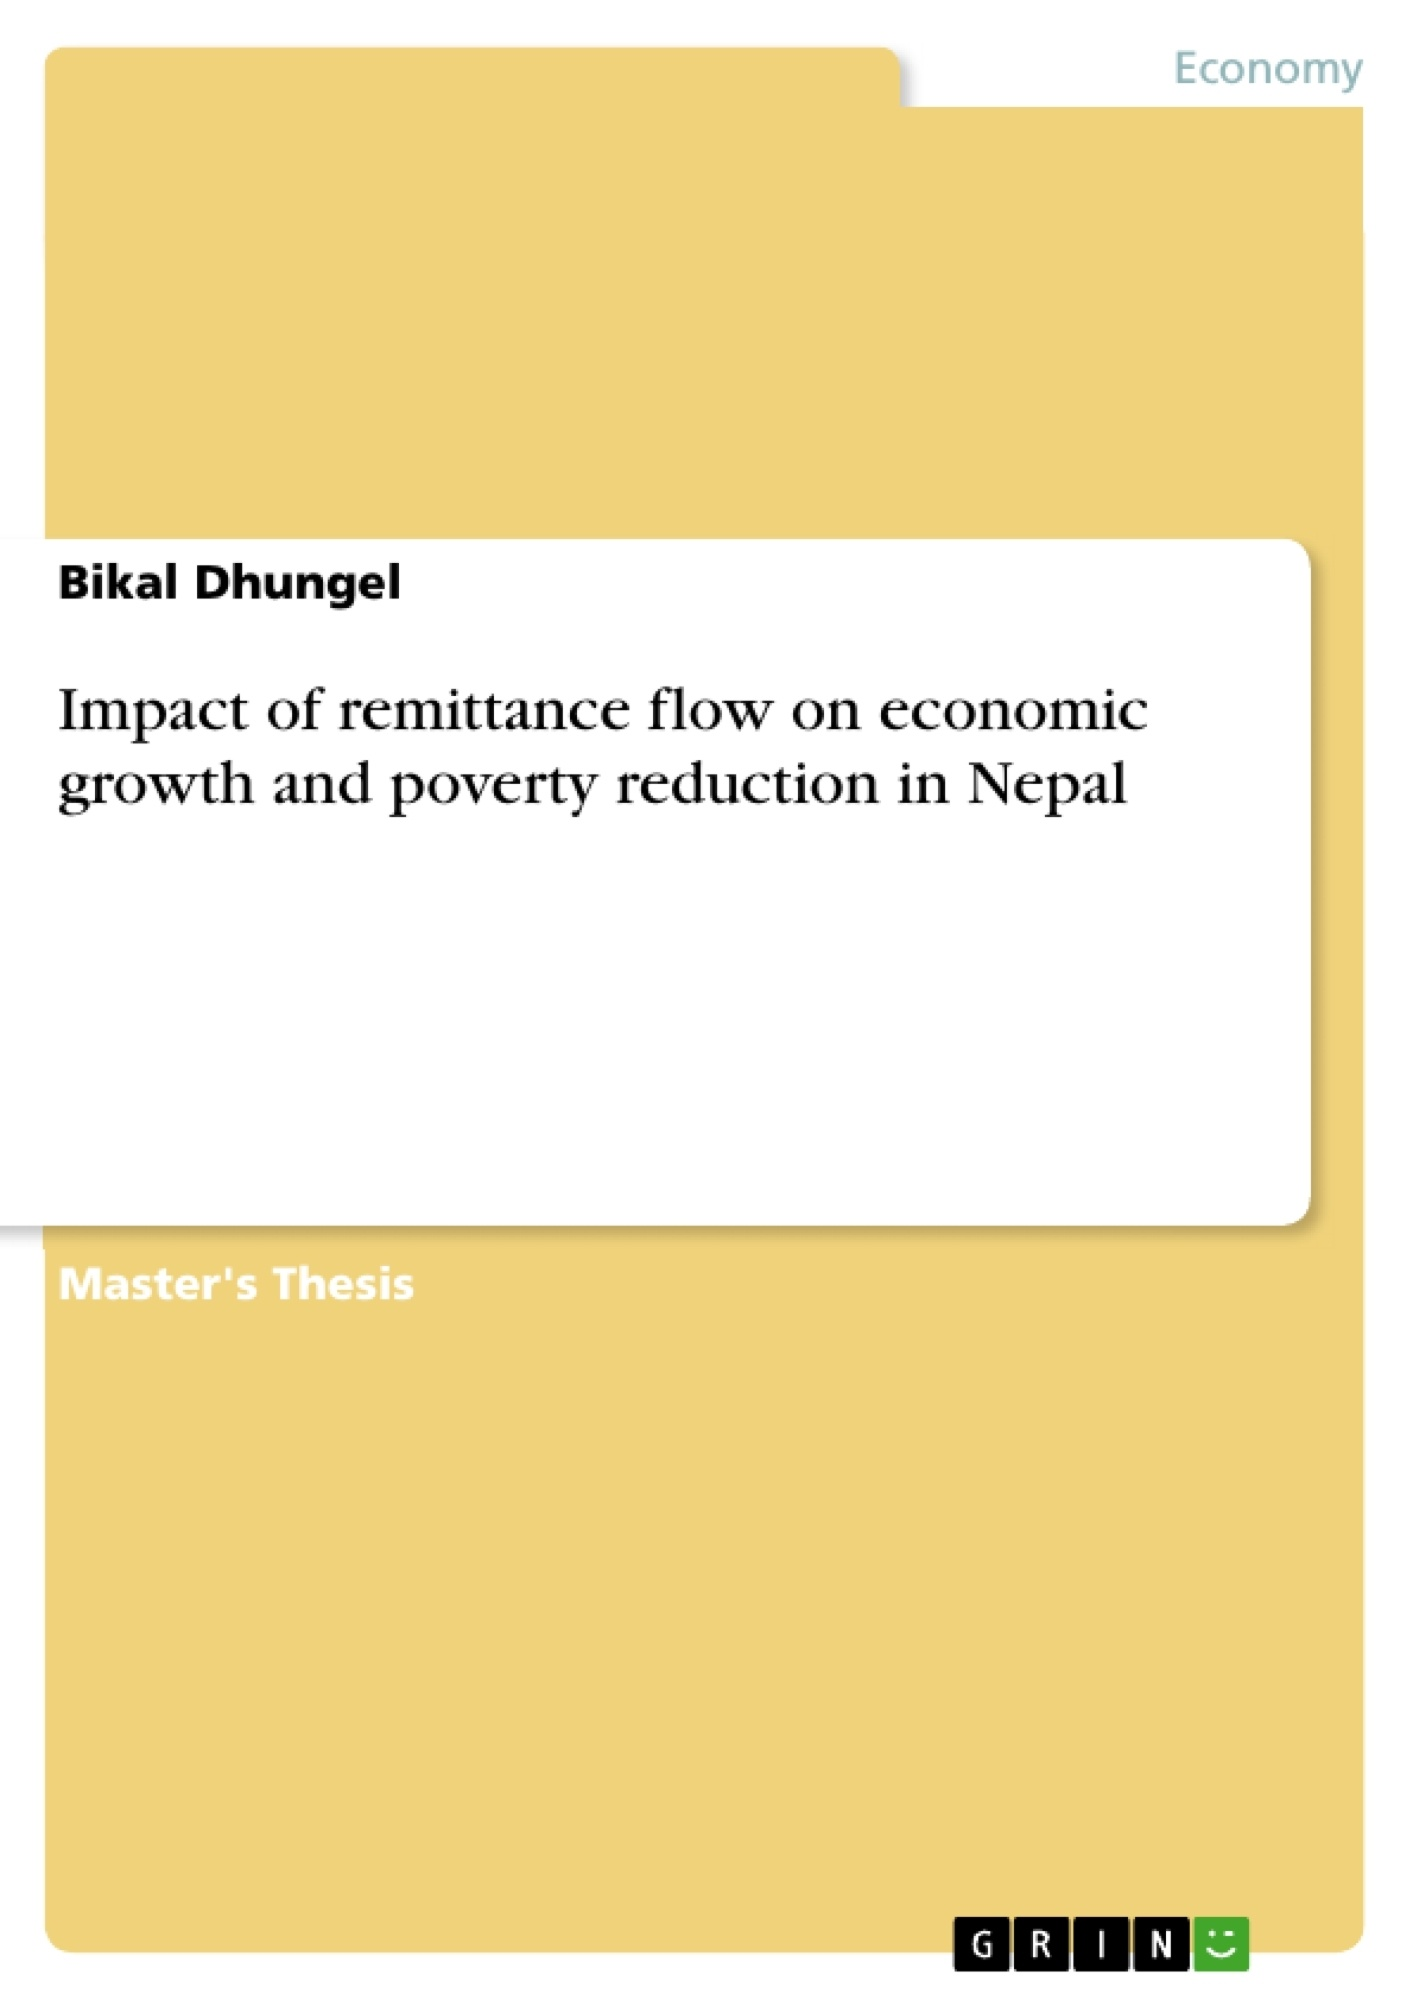 Topics of thesis on remittance and poverty